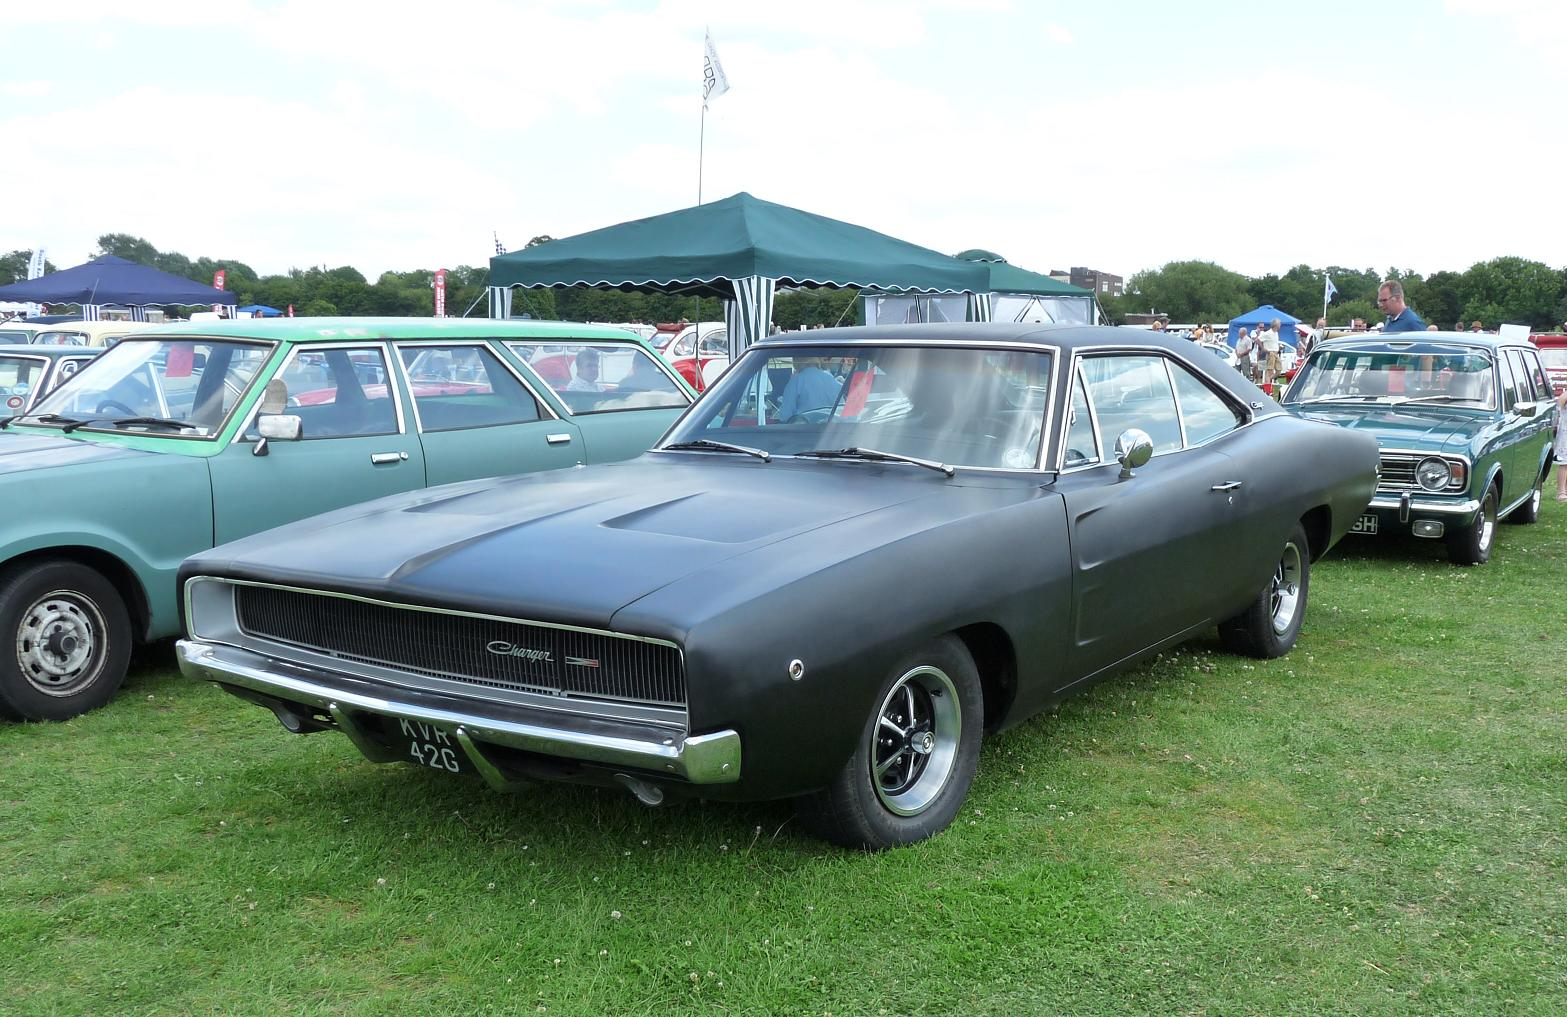 Dodge Charger Cars For Sale Uk